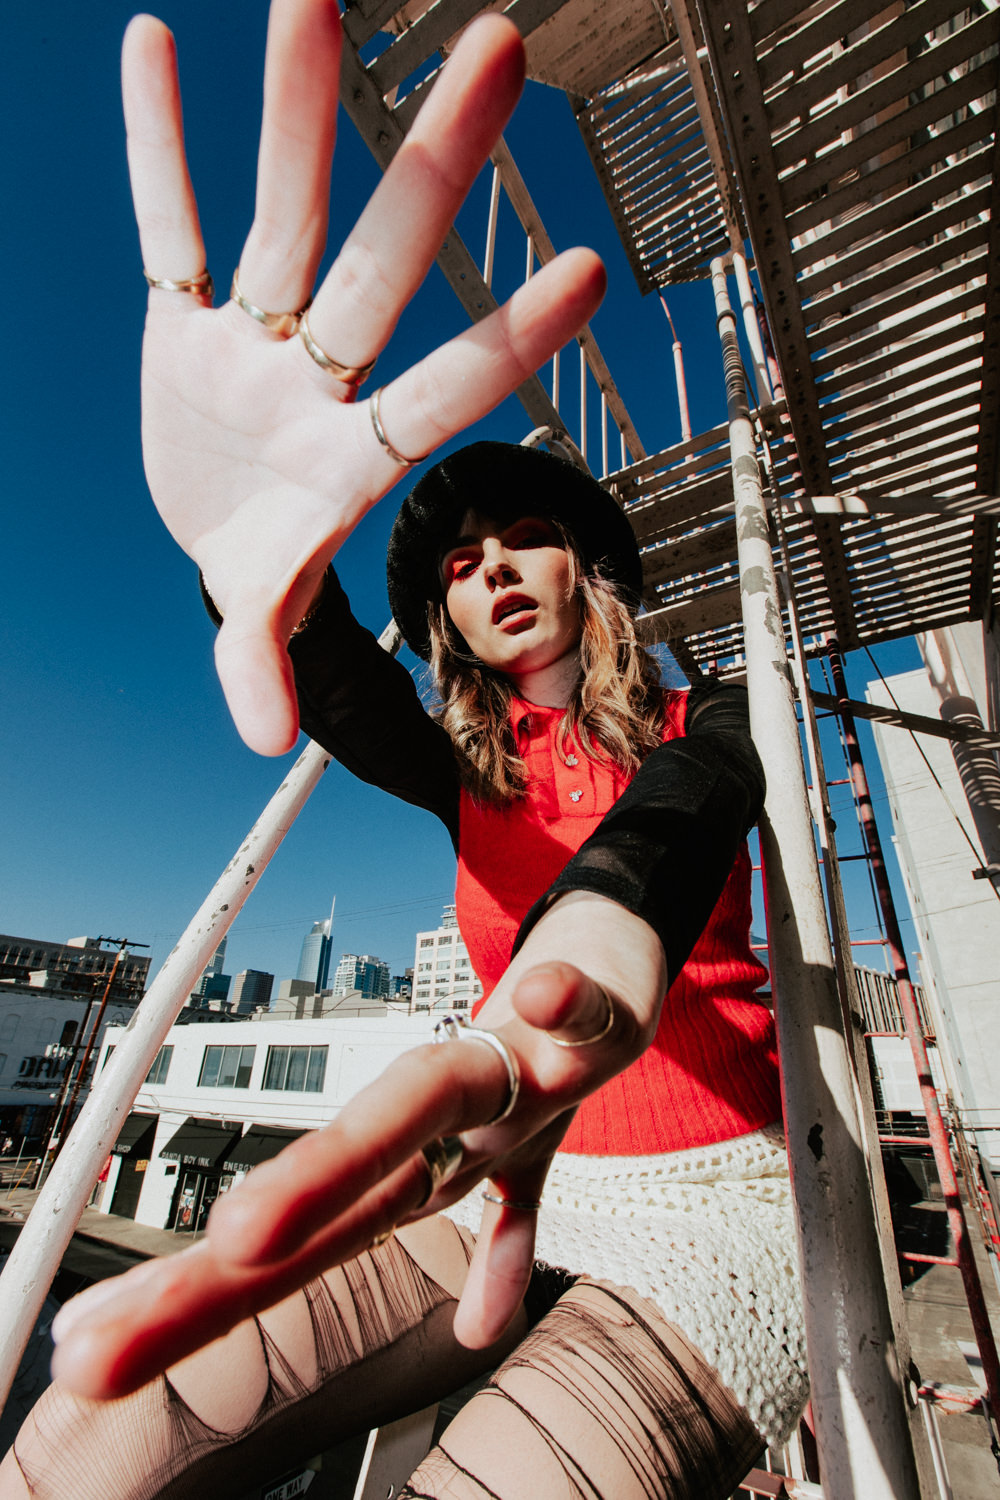 ava-maybee-fire-escape-stairs-hands-pose-AnnaLeeMedia